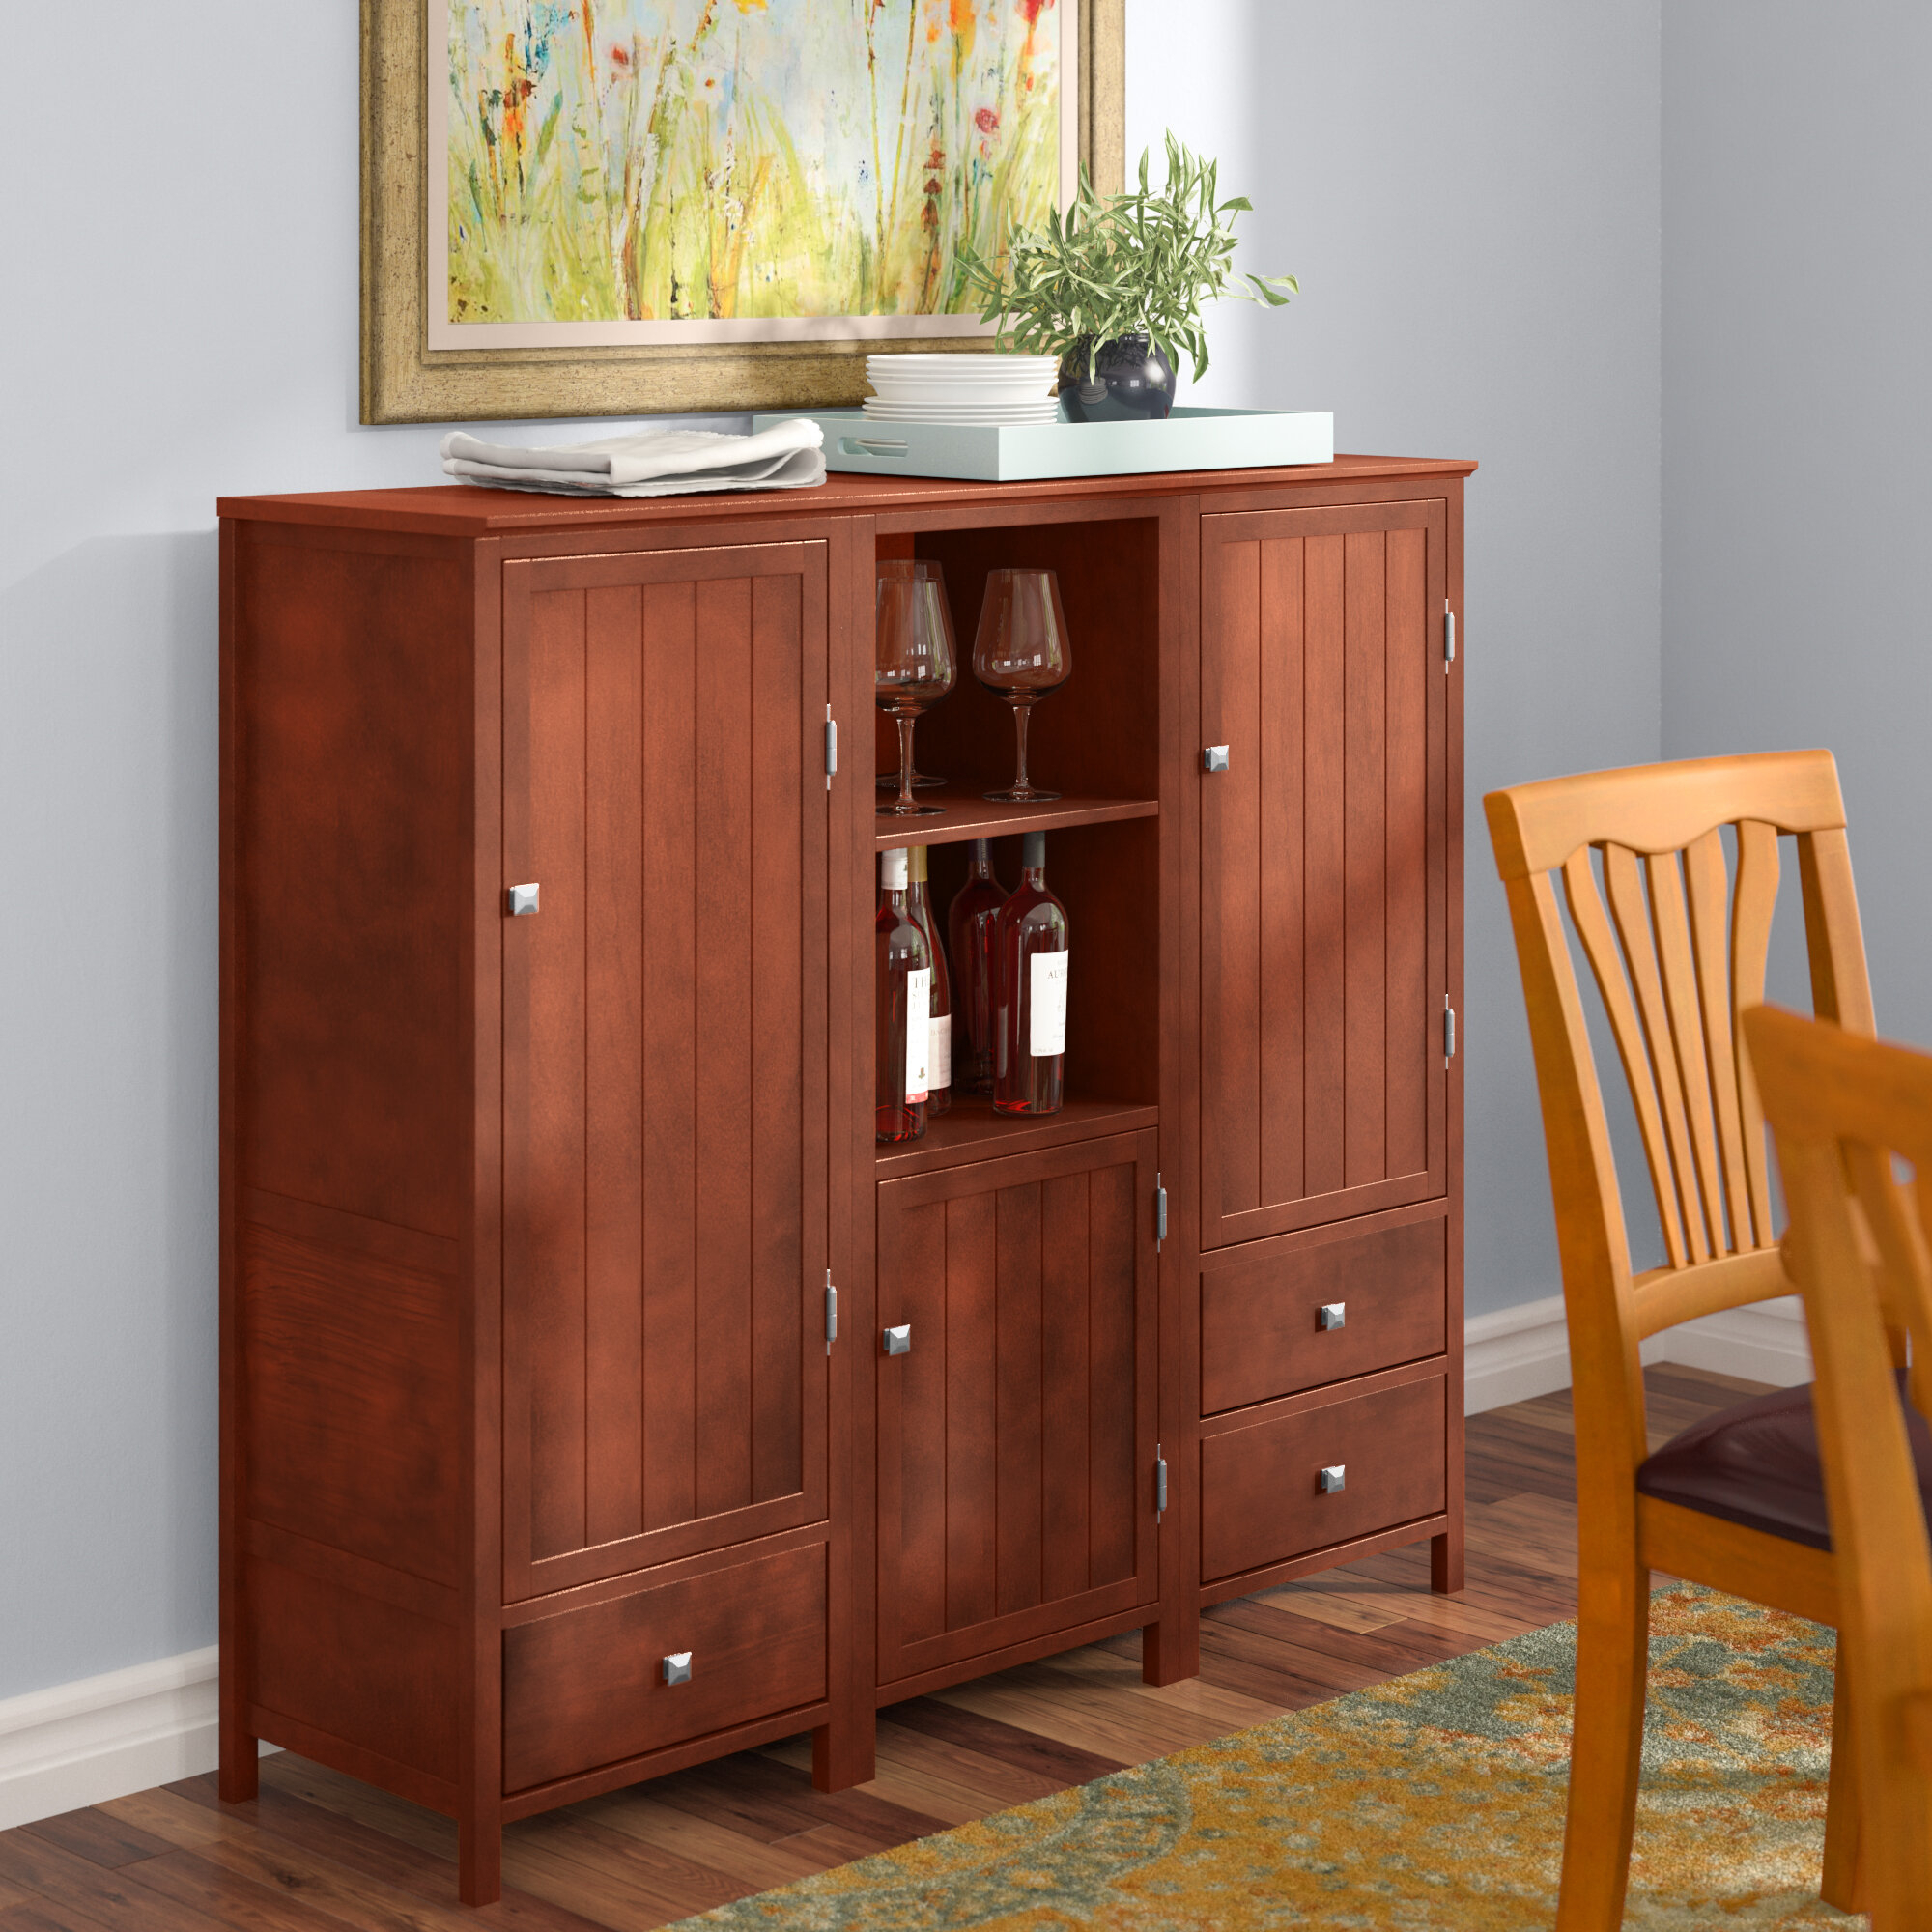 Extra Long Buffet Cabinet | Wayfair In Contemporary Style Wooden Buffets With Two Side Door Storage Cabinets (View 12 of 30)